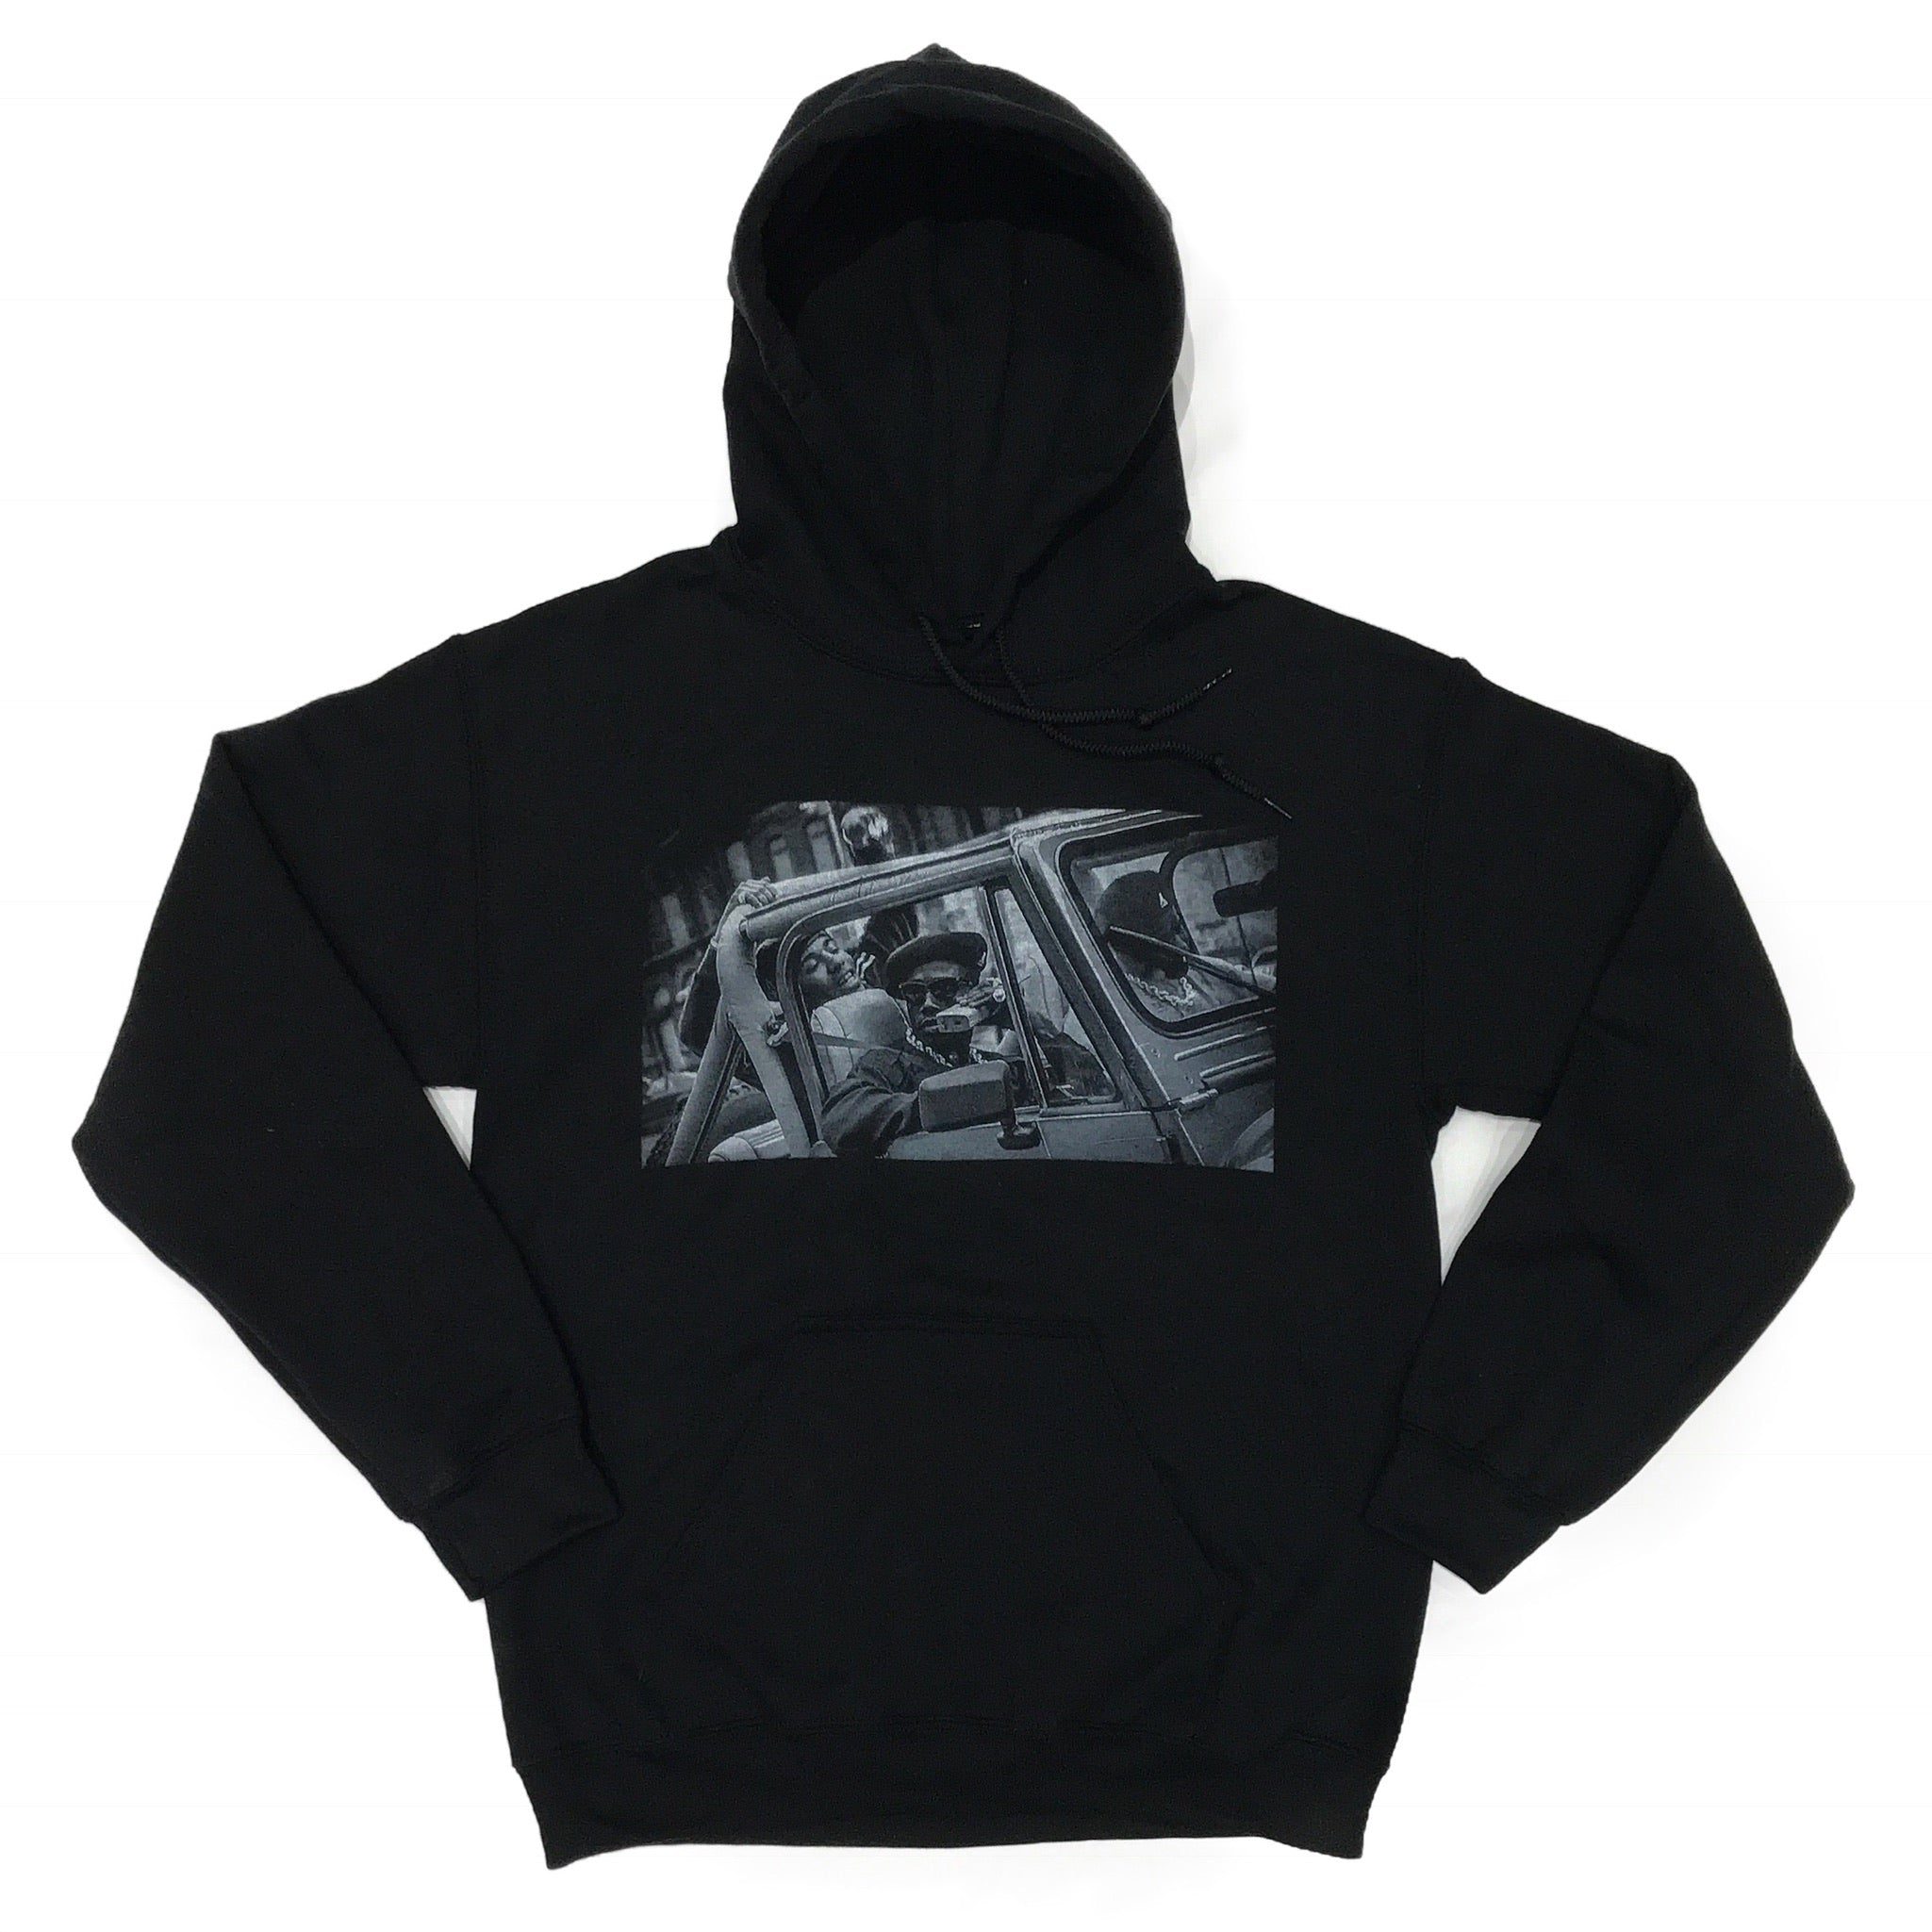 365 Clothing New Jack City Hoodie -Black